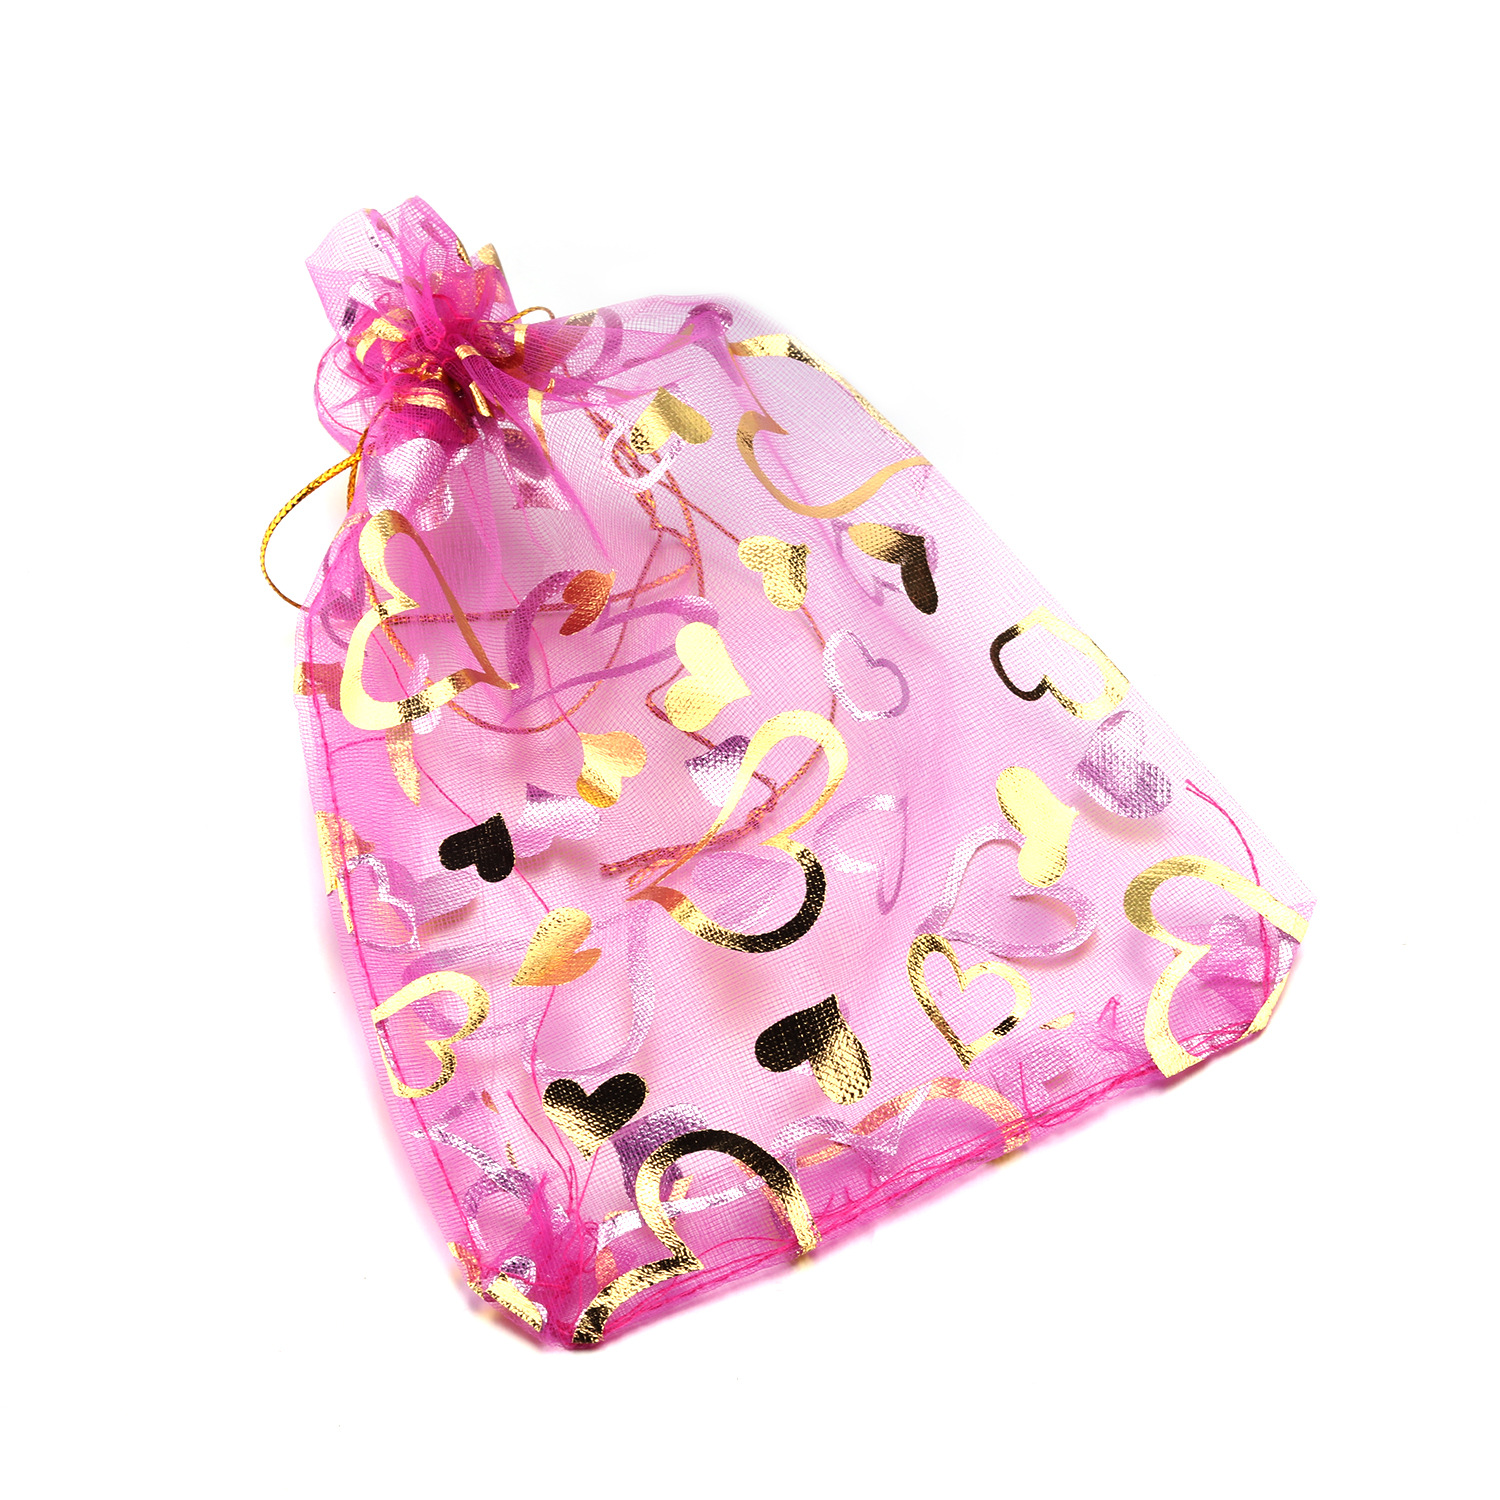 Accessories Can Be Installed Gift New Style Exquisite Accessories Organza Bag Jewelry Bag Drawstring Bag Hh202